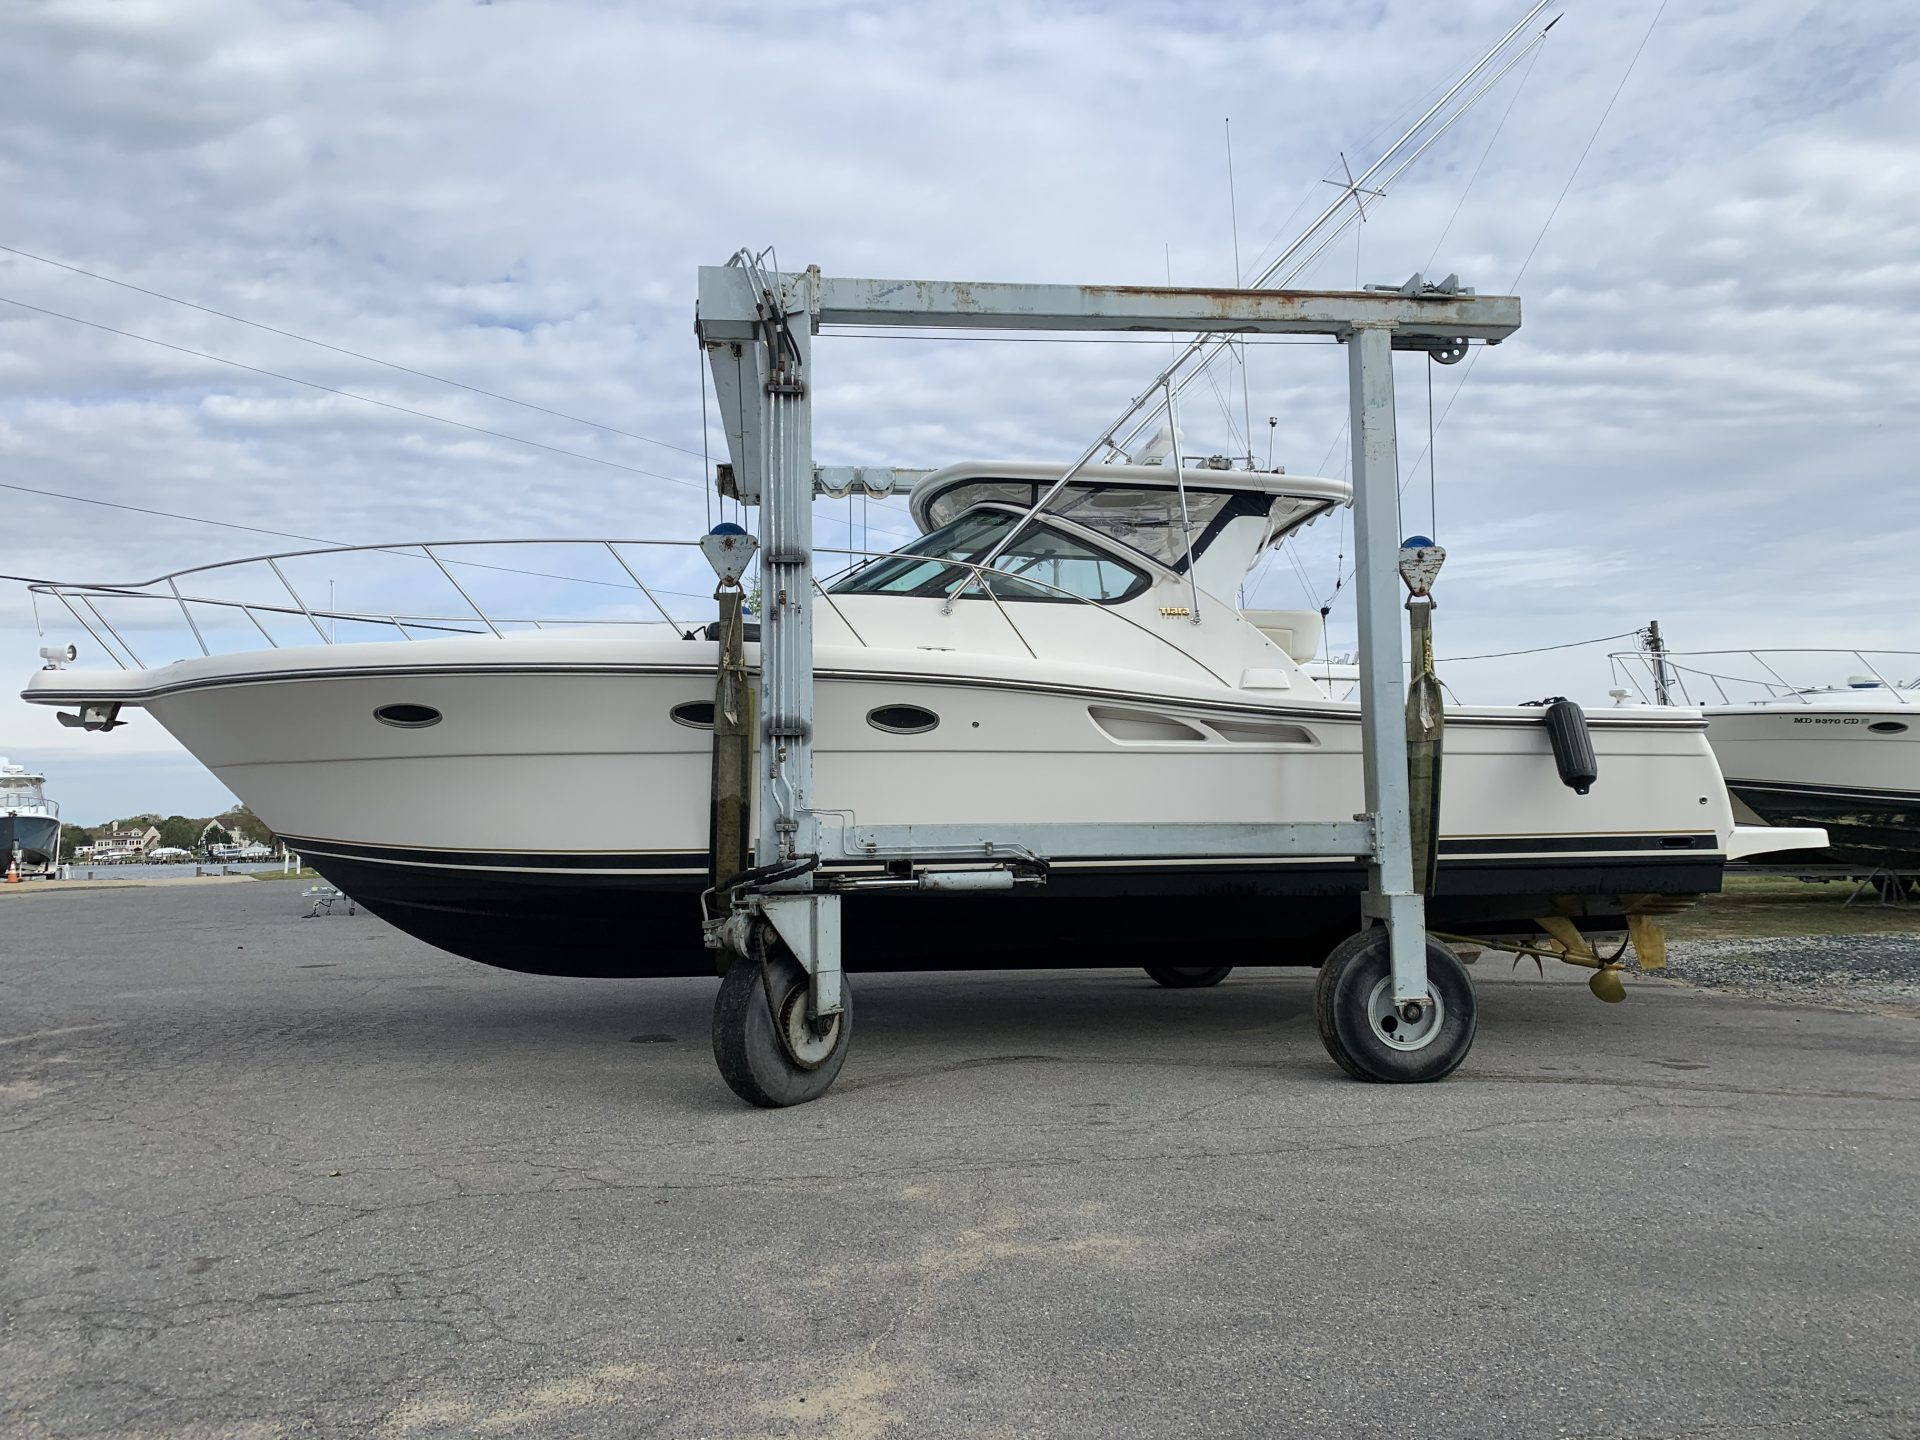 Travel Lift Services - Ventnor Marina